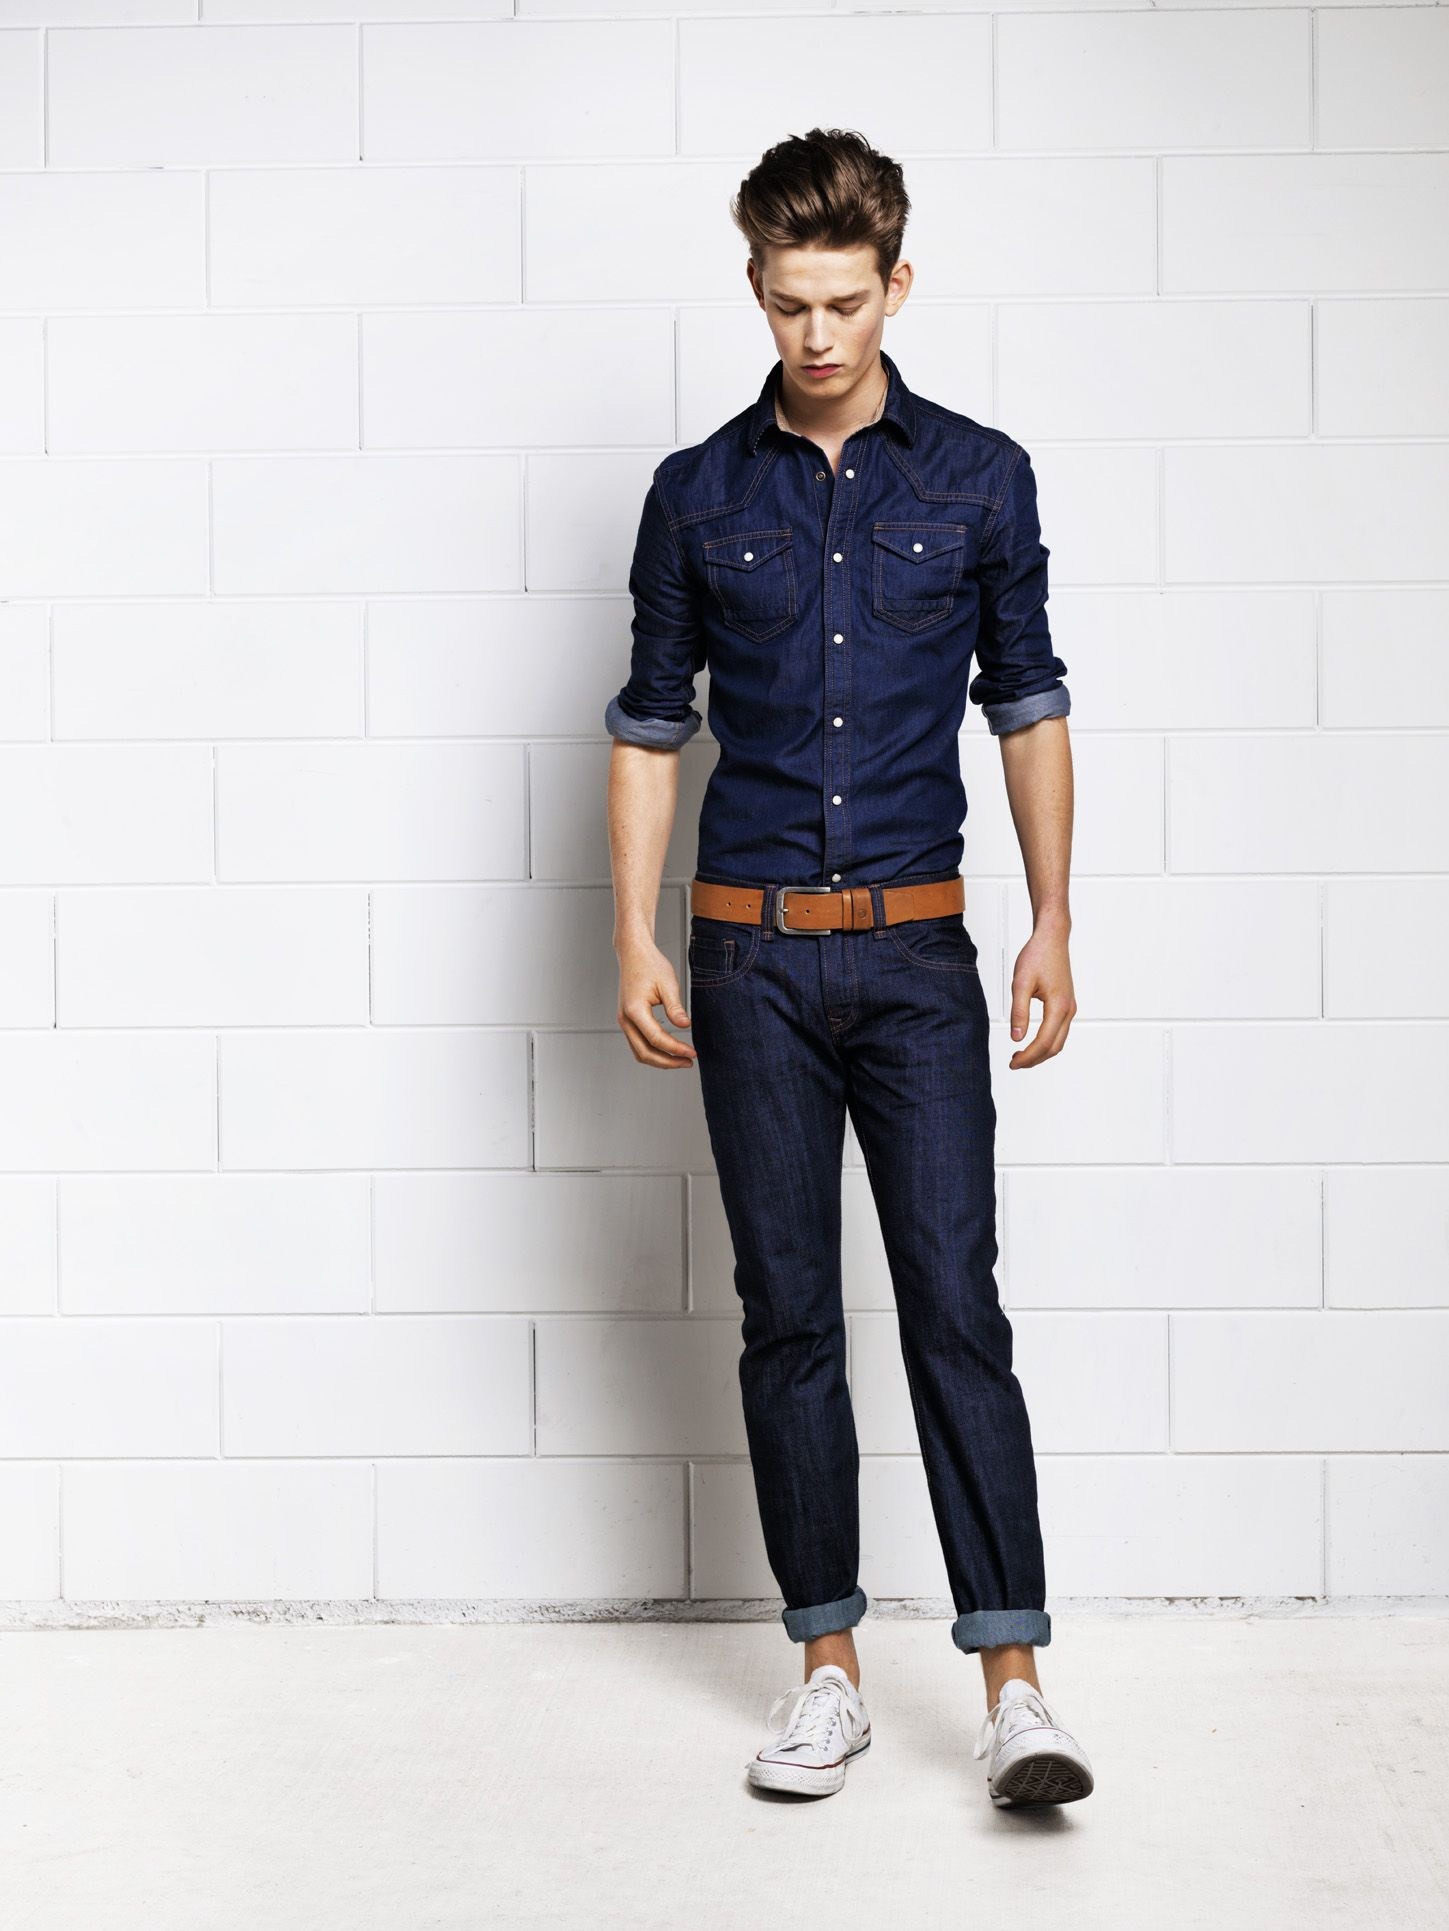 WE Men - Lookbook April 2014 | Teen - www.wefashion.com ...